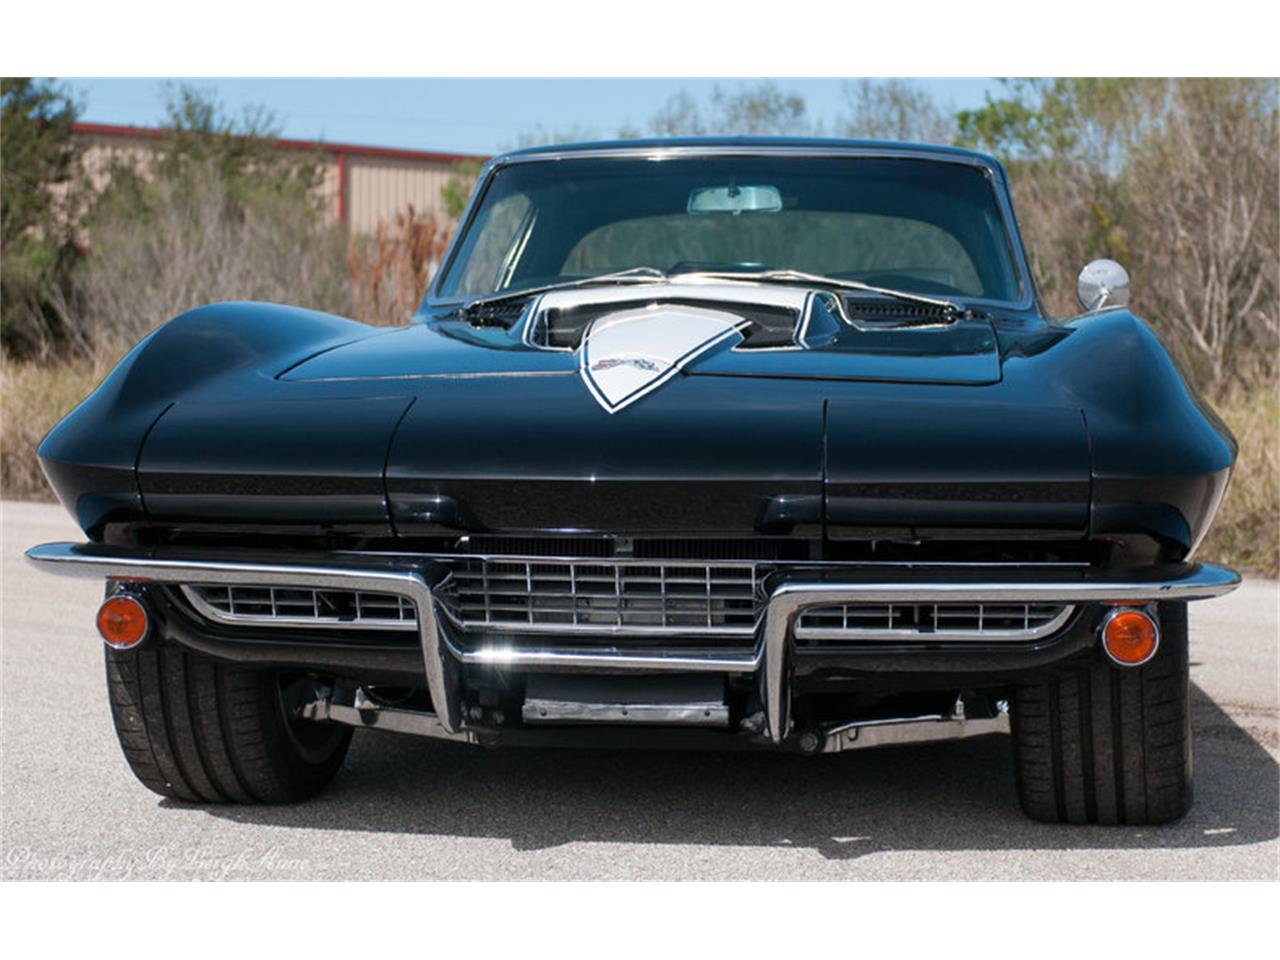 Large Picture of Classic '67 Corvette located in Punta Gorda Florida Auction Vehicle Offered by Premier Auction Group - NF44